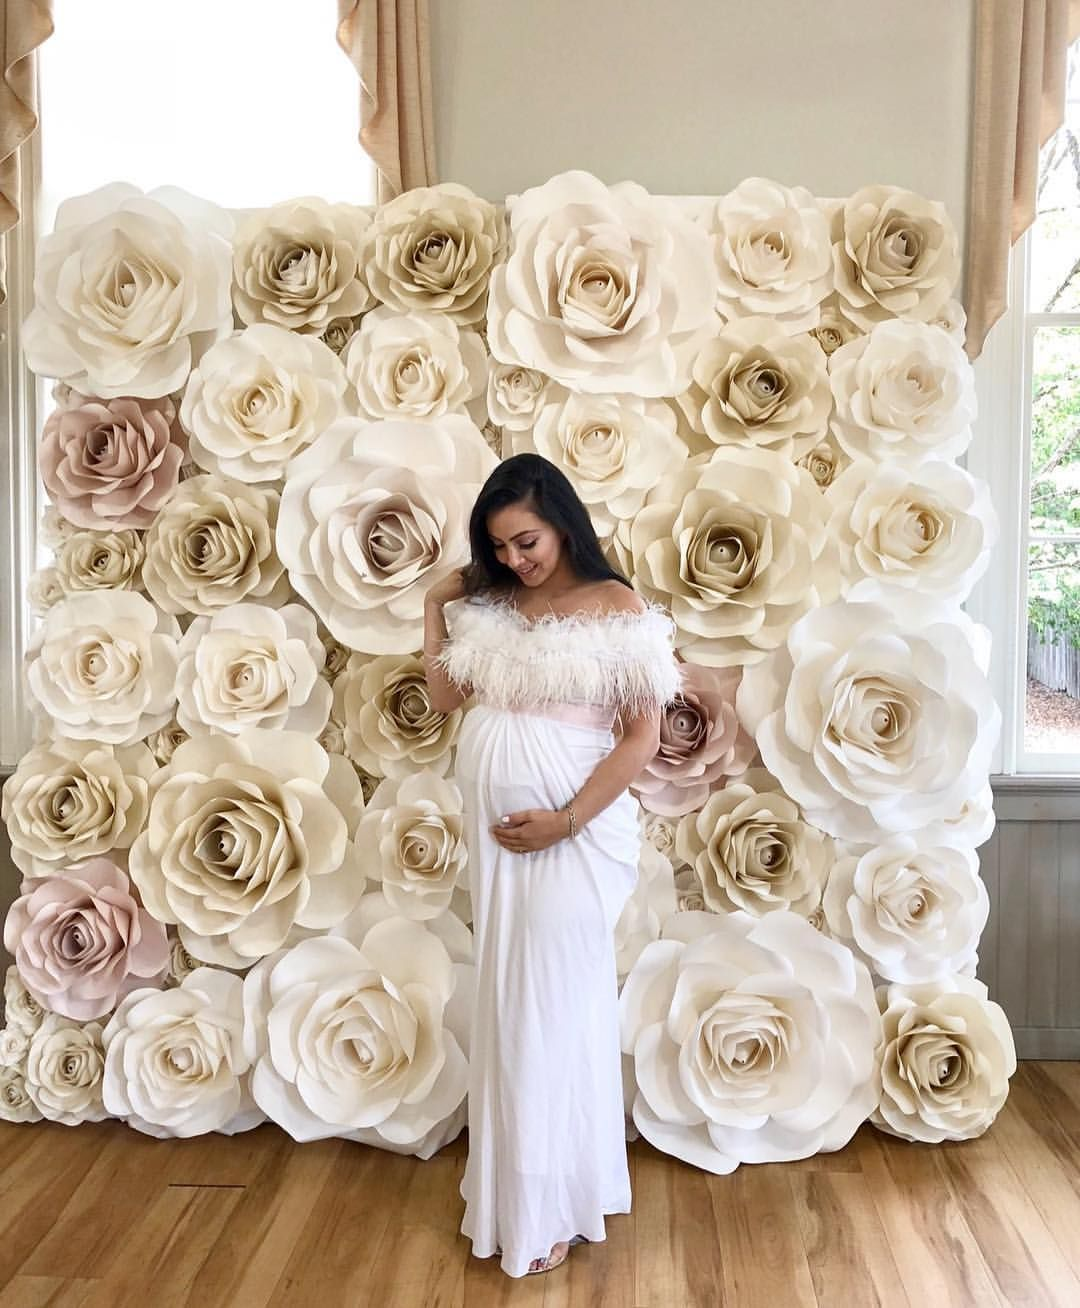 8x8 Paper Rose Wall For A Beautiful Momma Paperflowers Paperroses Paperrose Paperrosewall Pa Flower Wall Wedding Flower Wall Backdrop Elegant Baby Shower